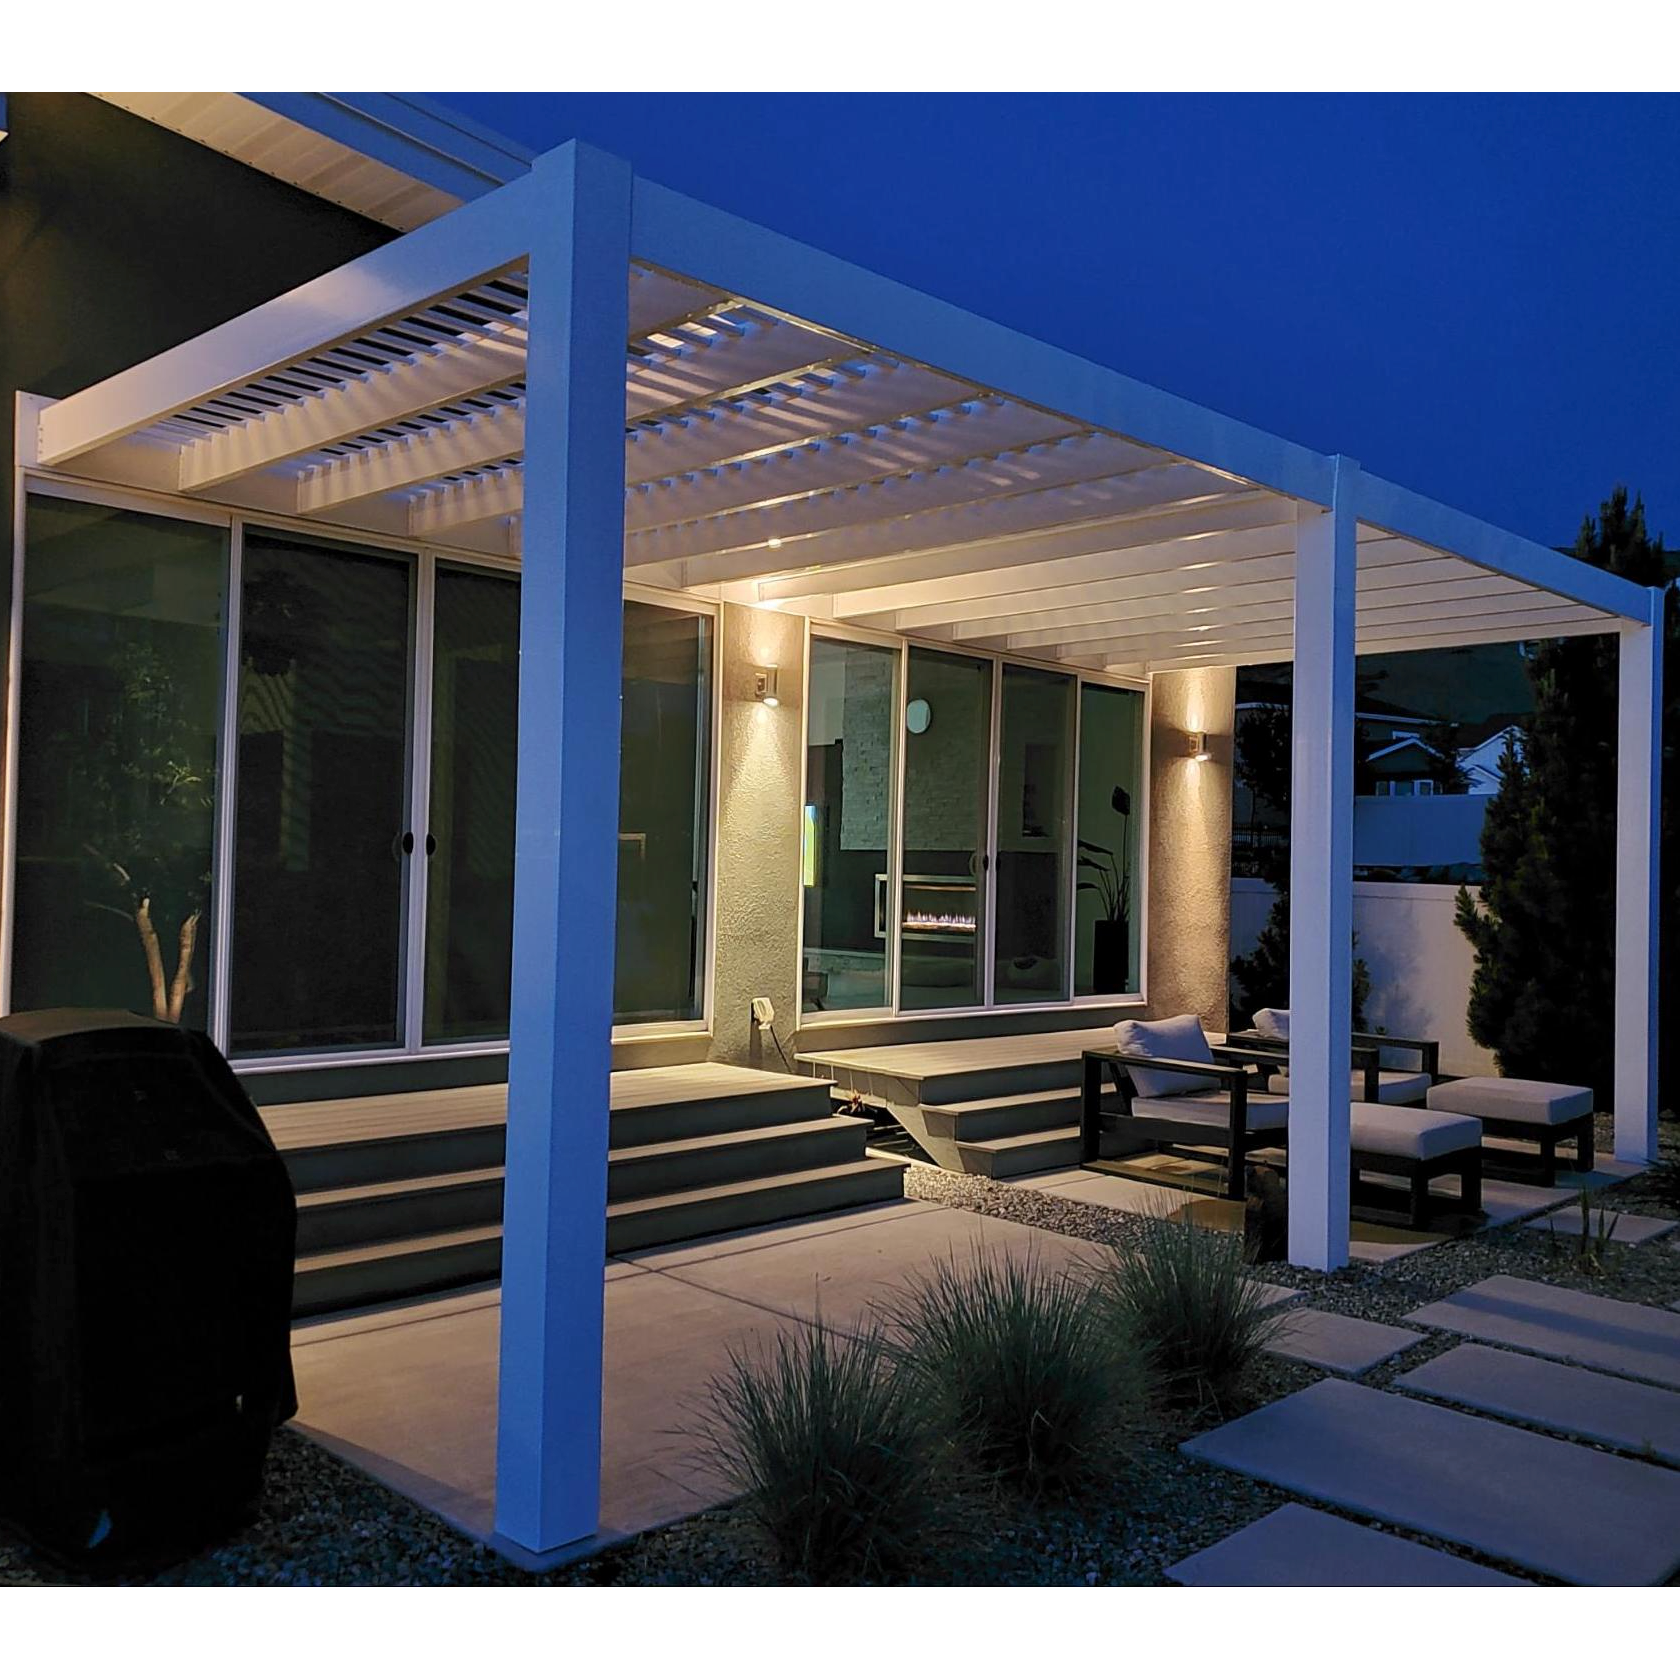 Modern Attached 3-Post Pergola at Night